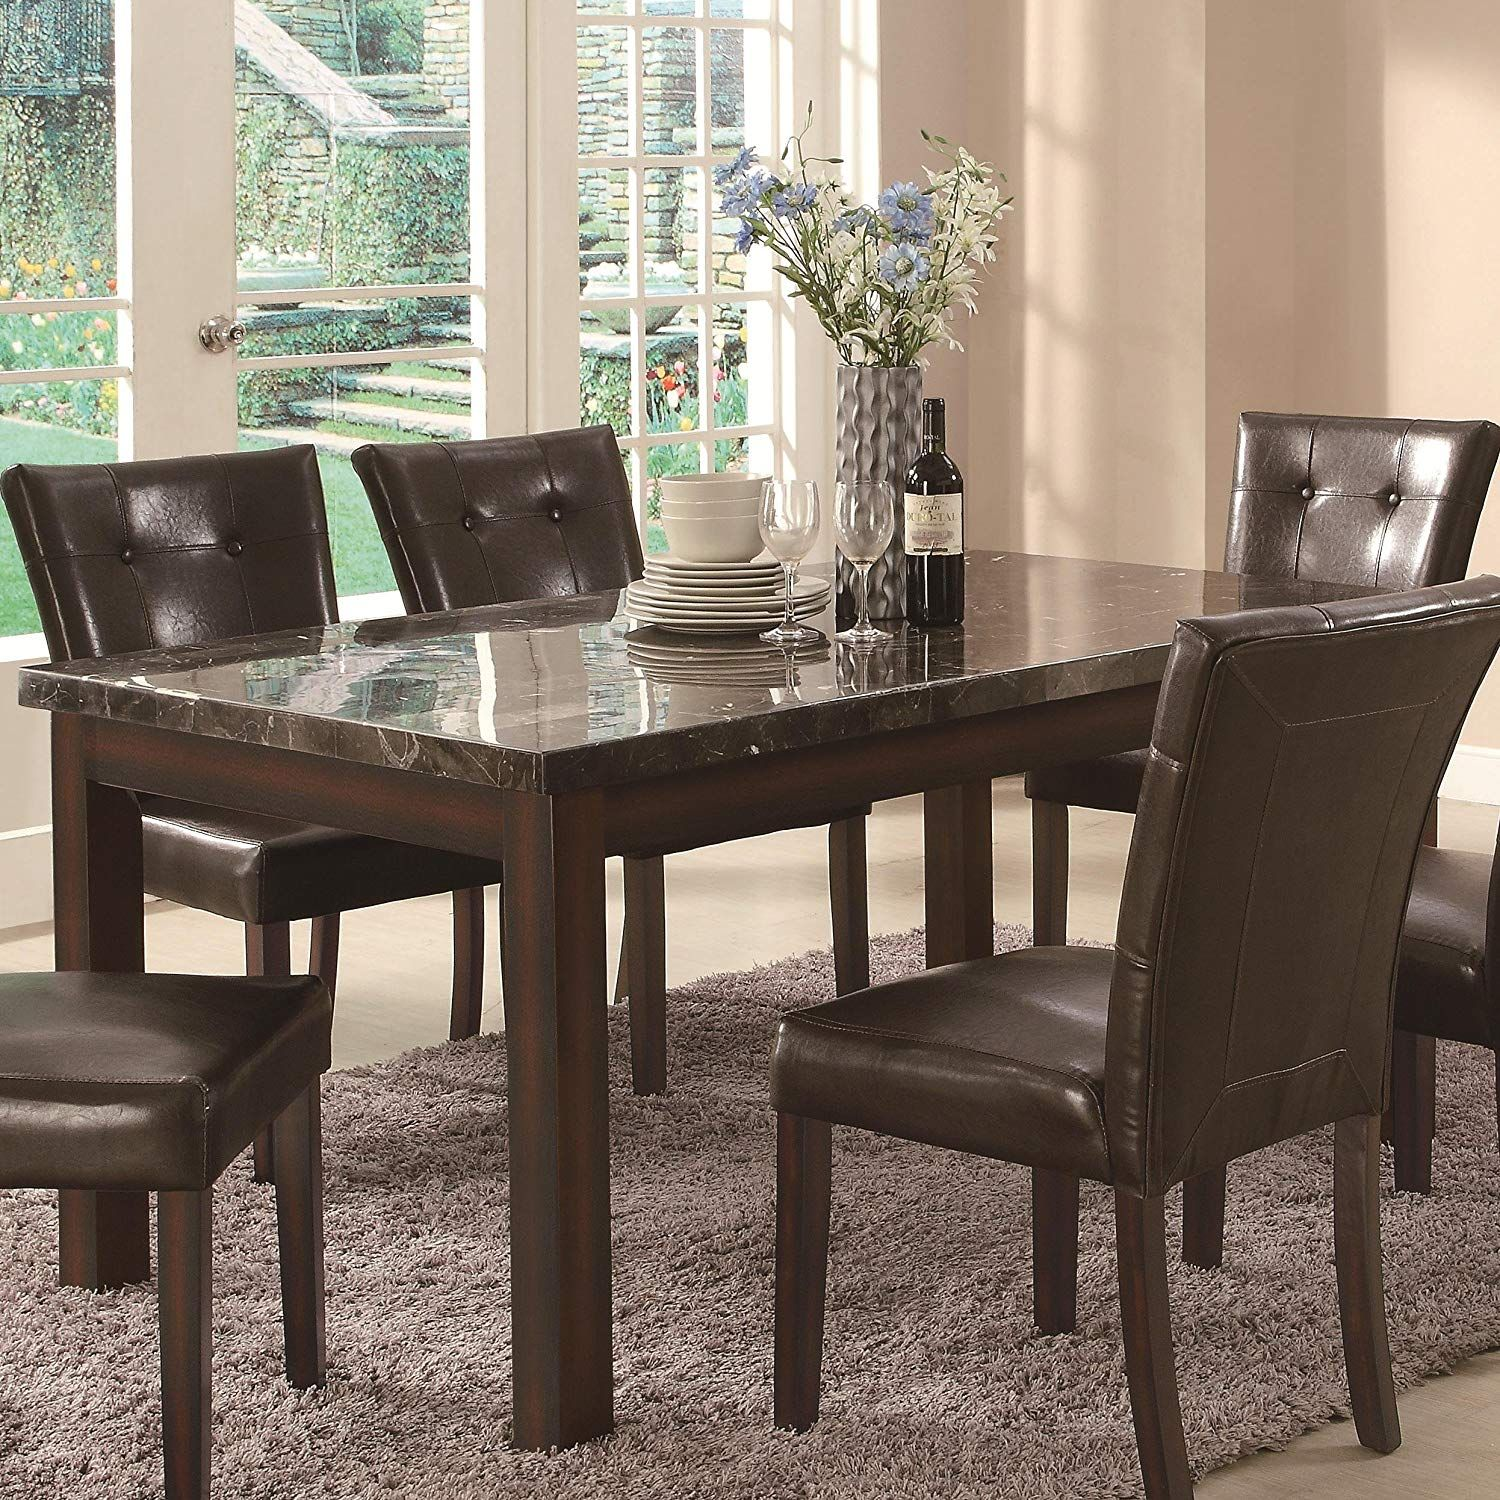 Coaster Home Furnishings 103770 Casual Dining Table